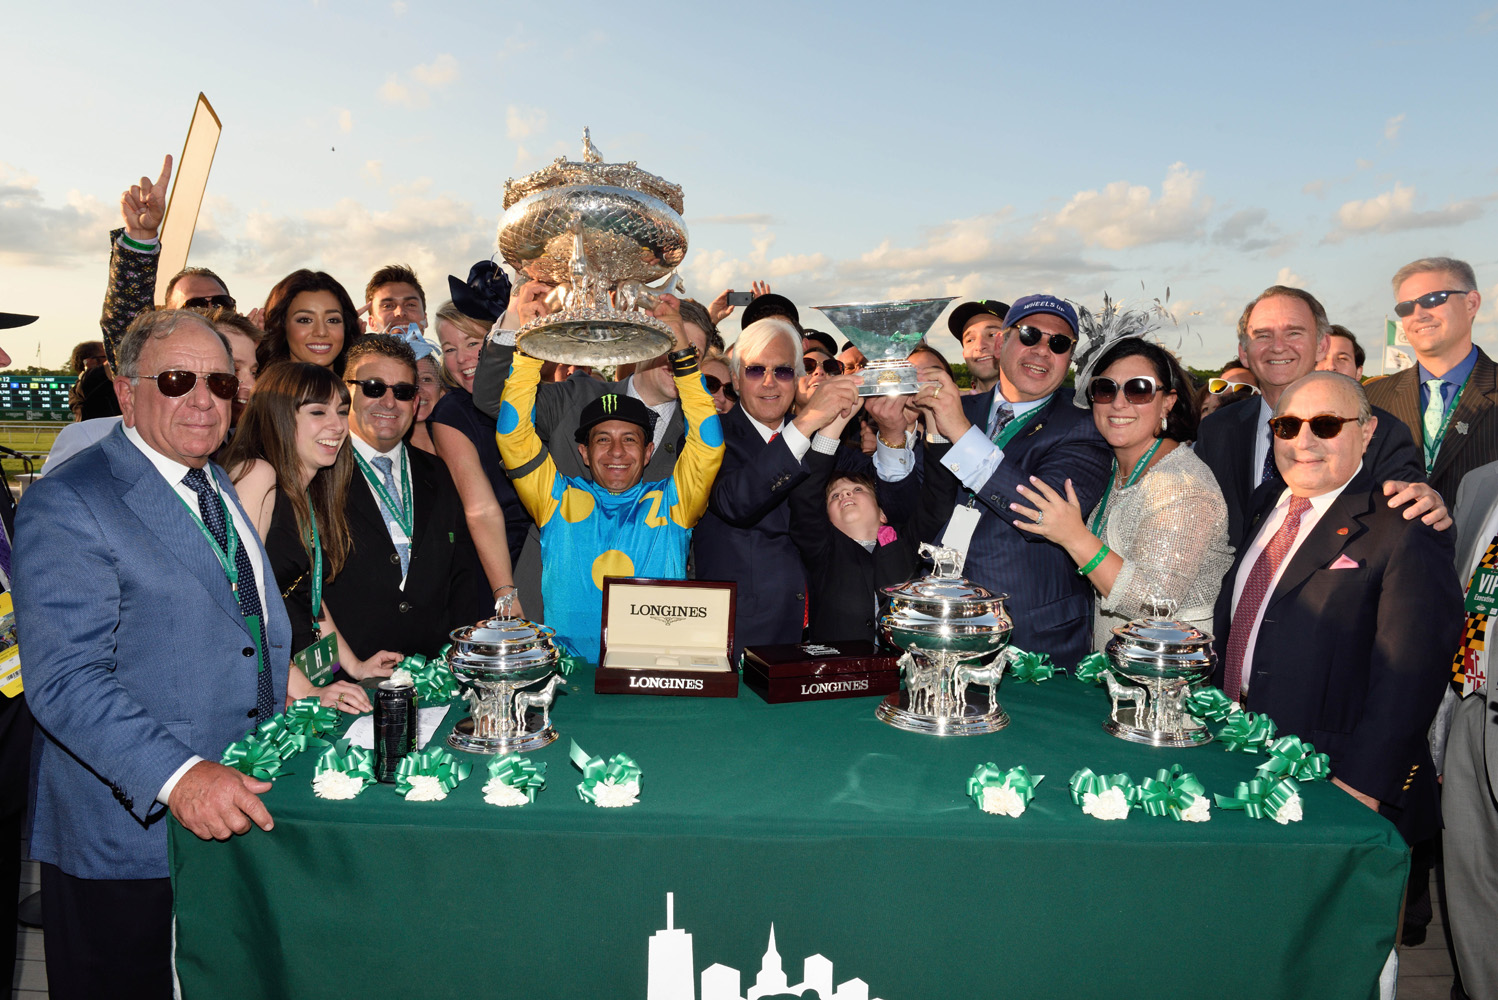 Bob Baffert and the winning connections of American Pharoah during the 2015 Belmont Stakes and Triple Crown trophy presentation (NYRA)